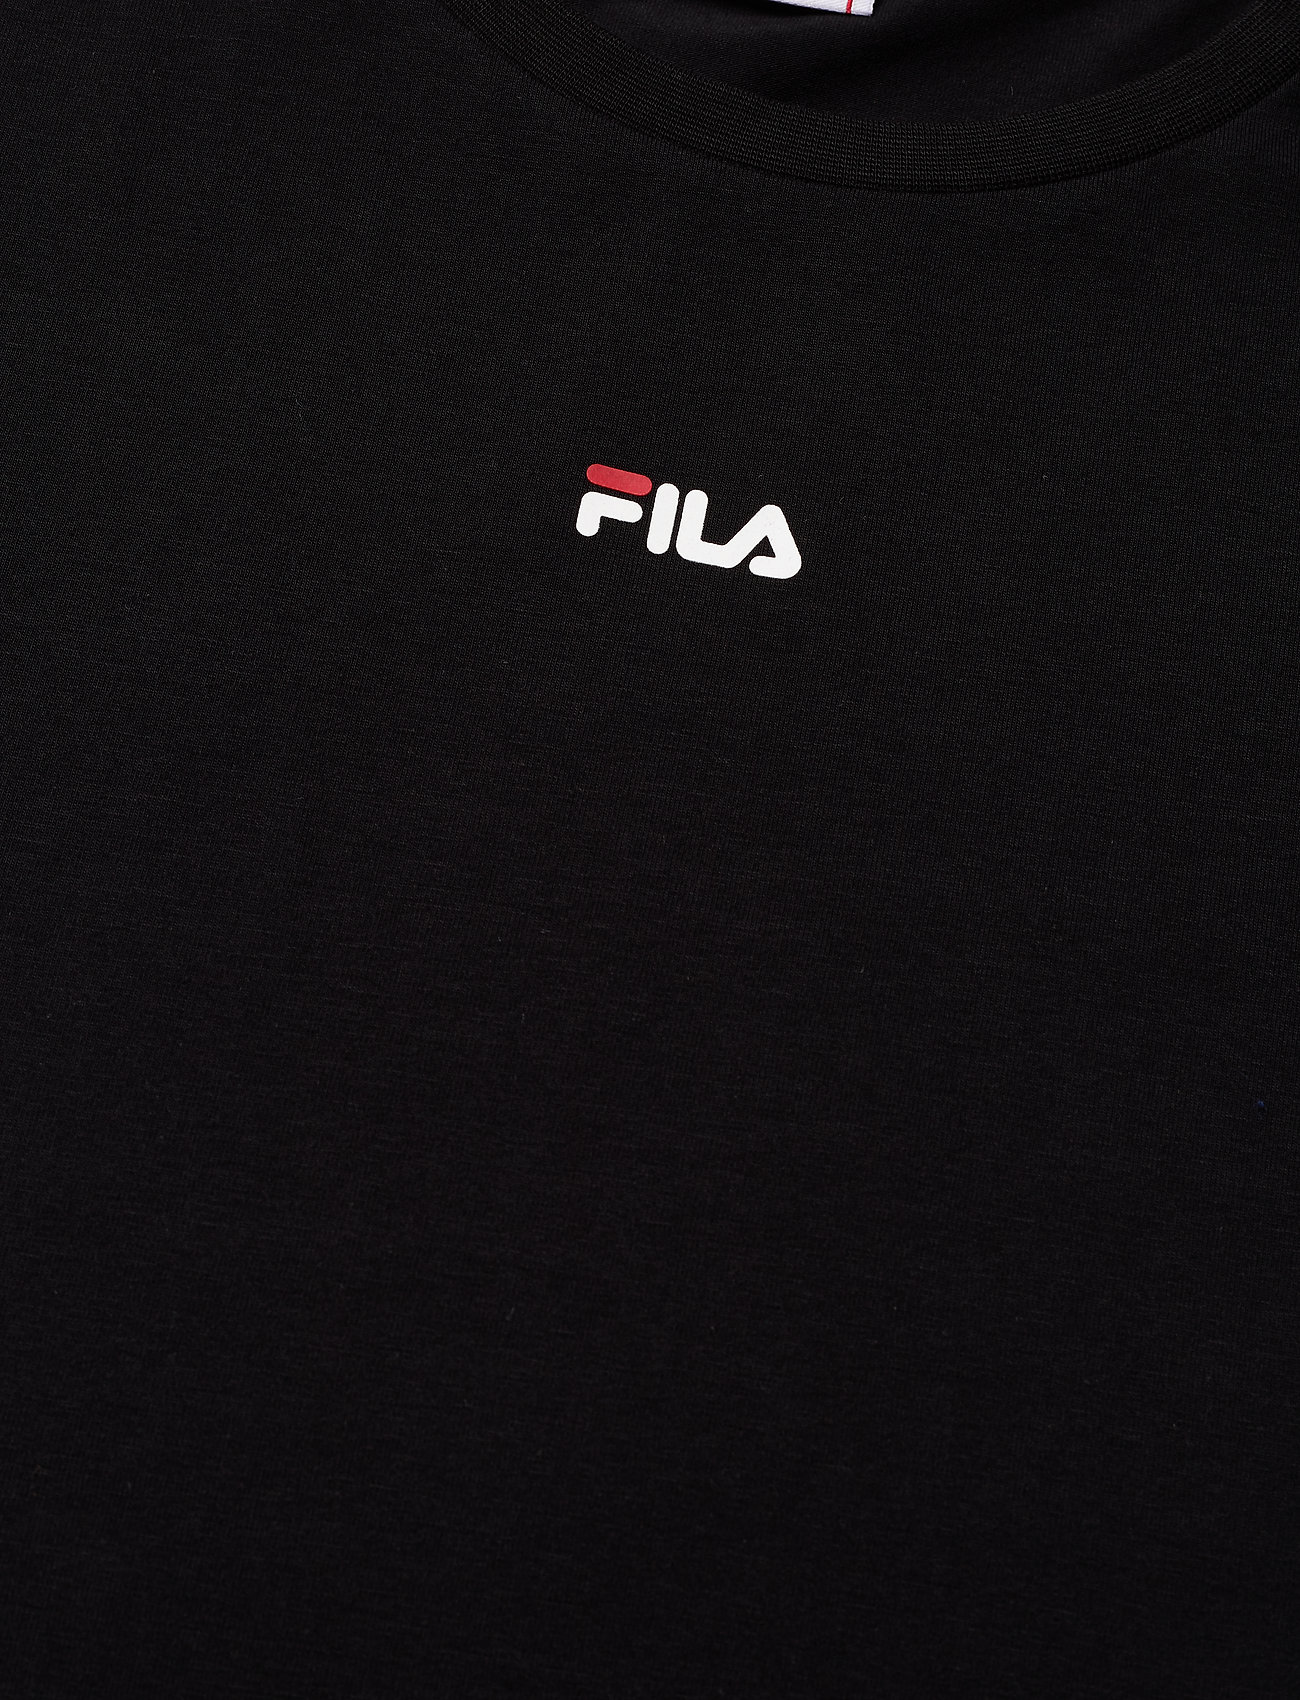 Women Taniel Tee Dress (Black) (420 kr) - FILA